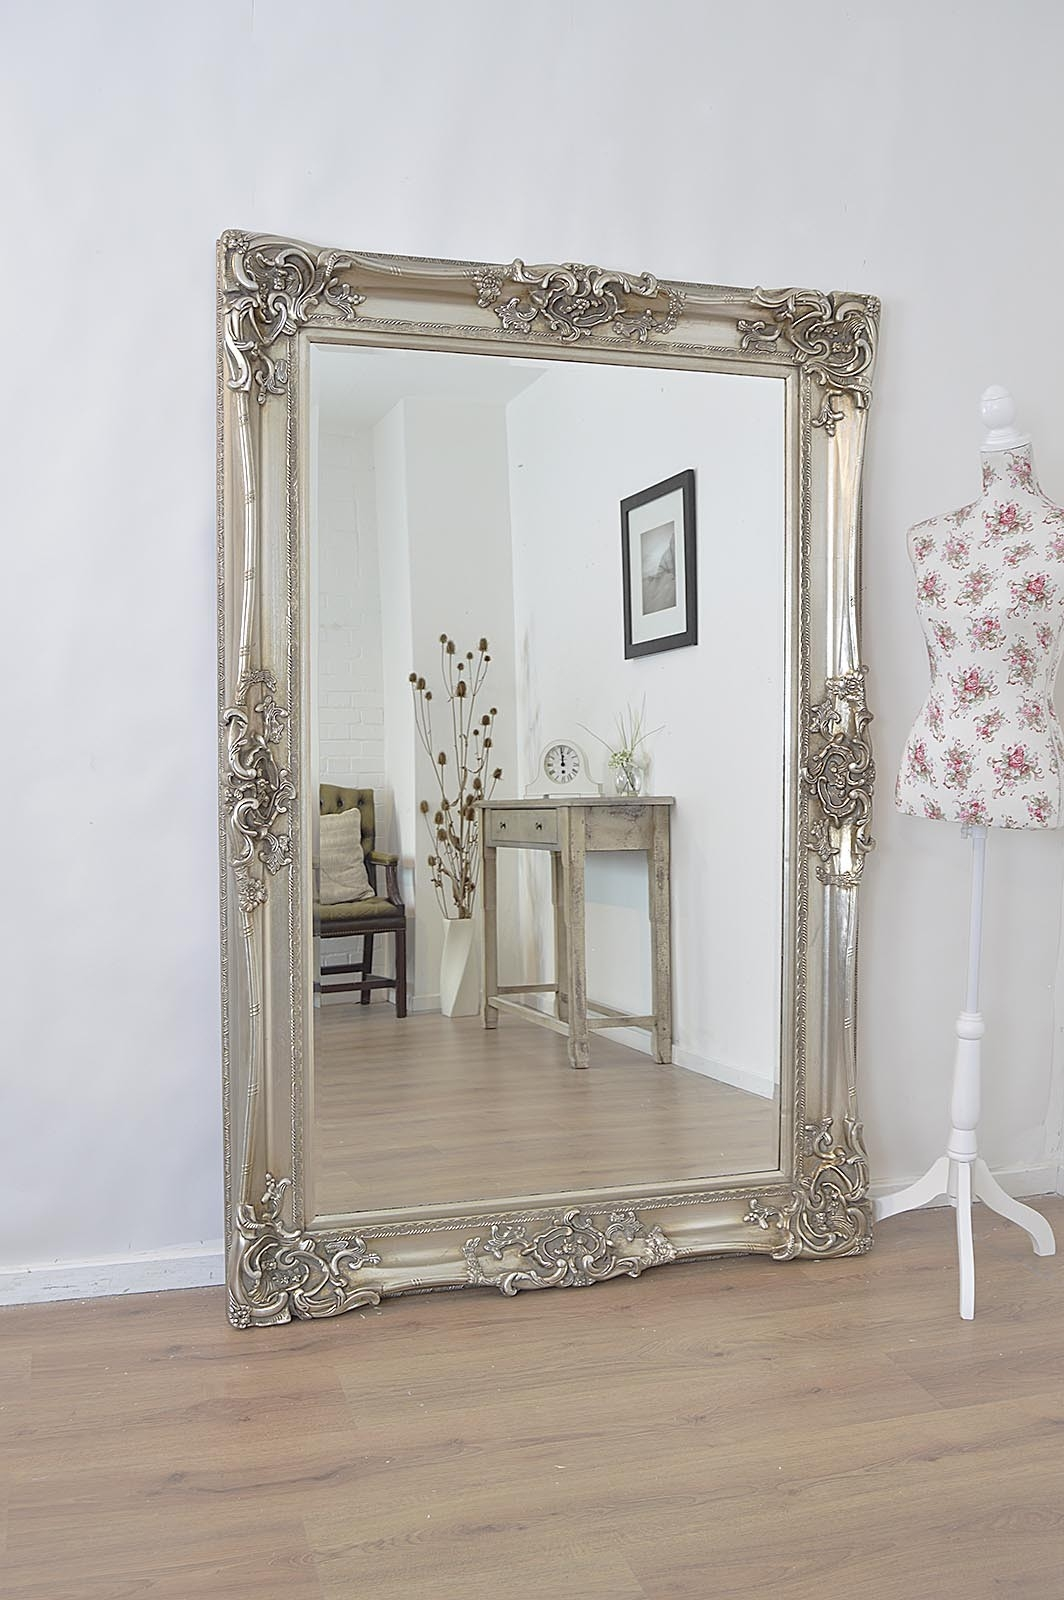 Fine Decoration Huge Wall Mirror Cozy Design Silver Ornate Huge With Regard To Large Ornate Silver Mirror (View 4 of 15)